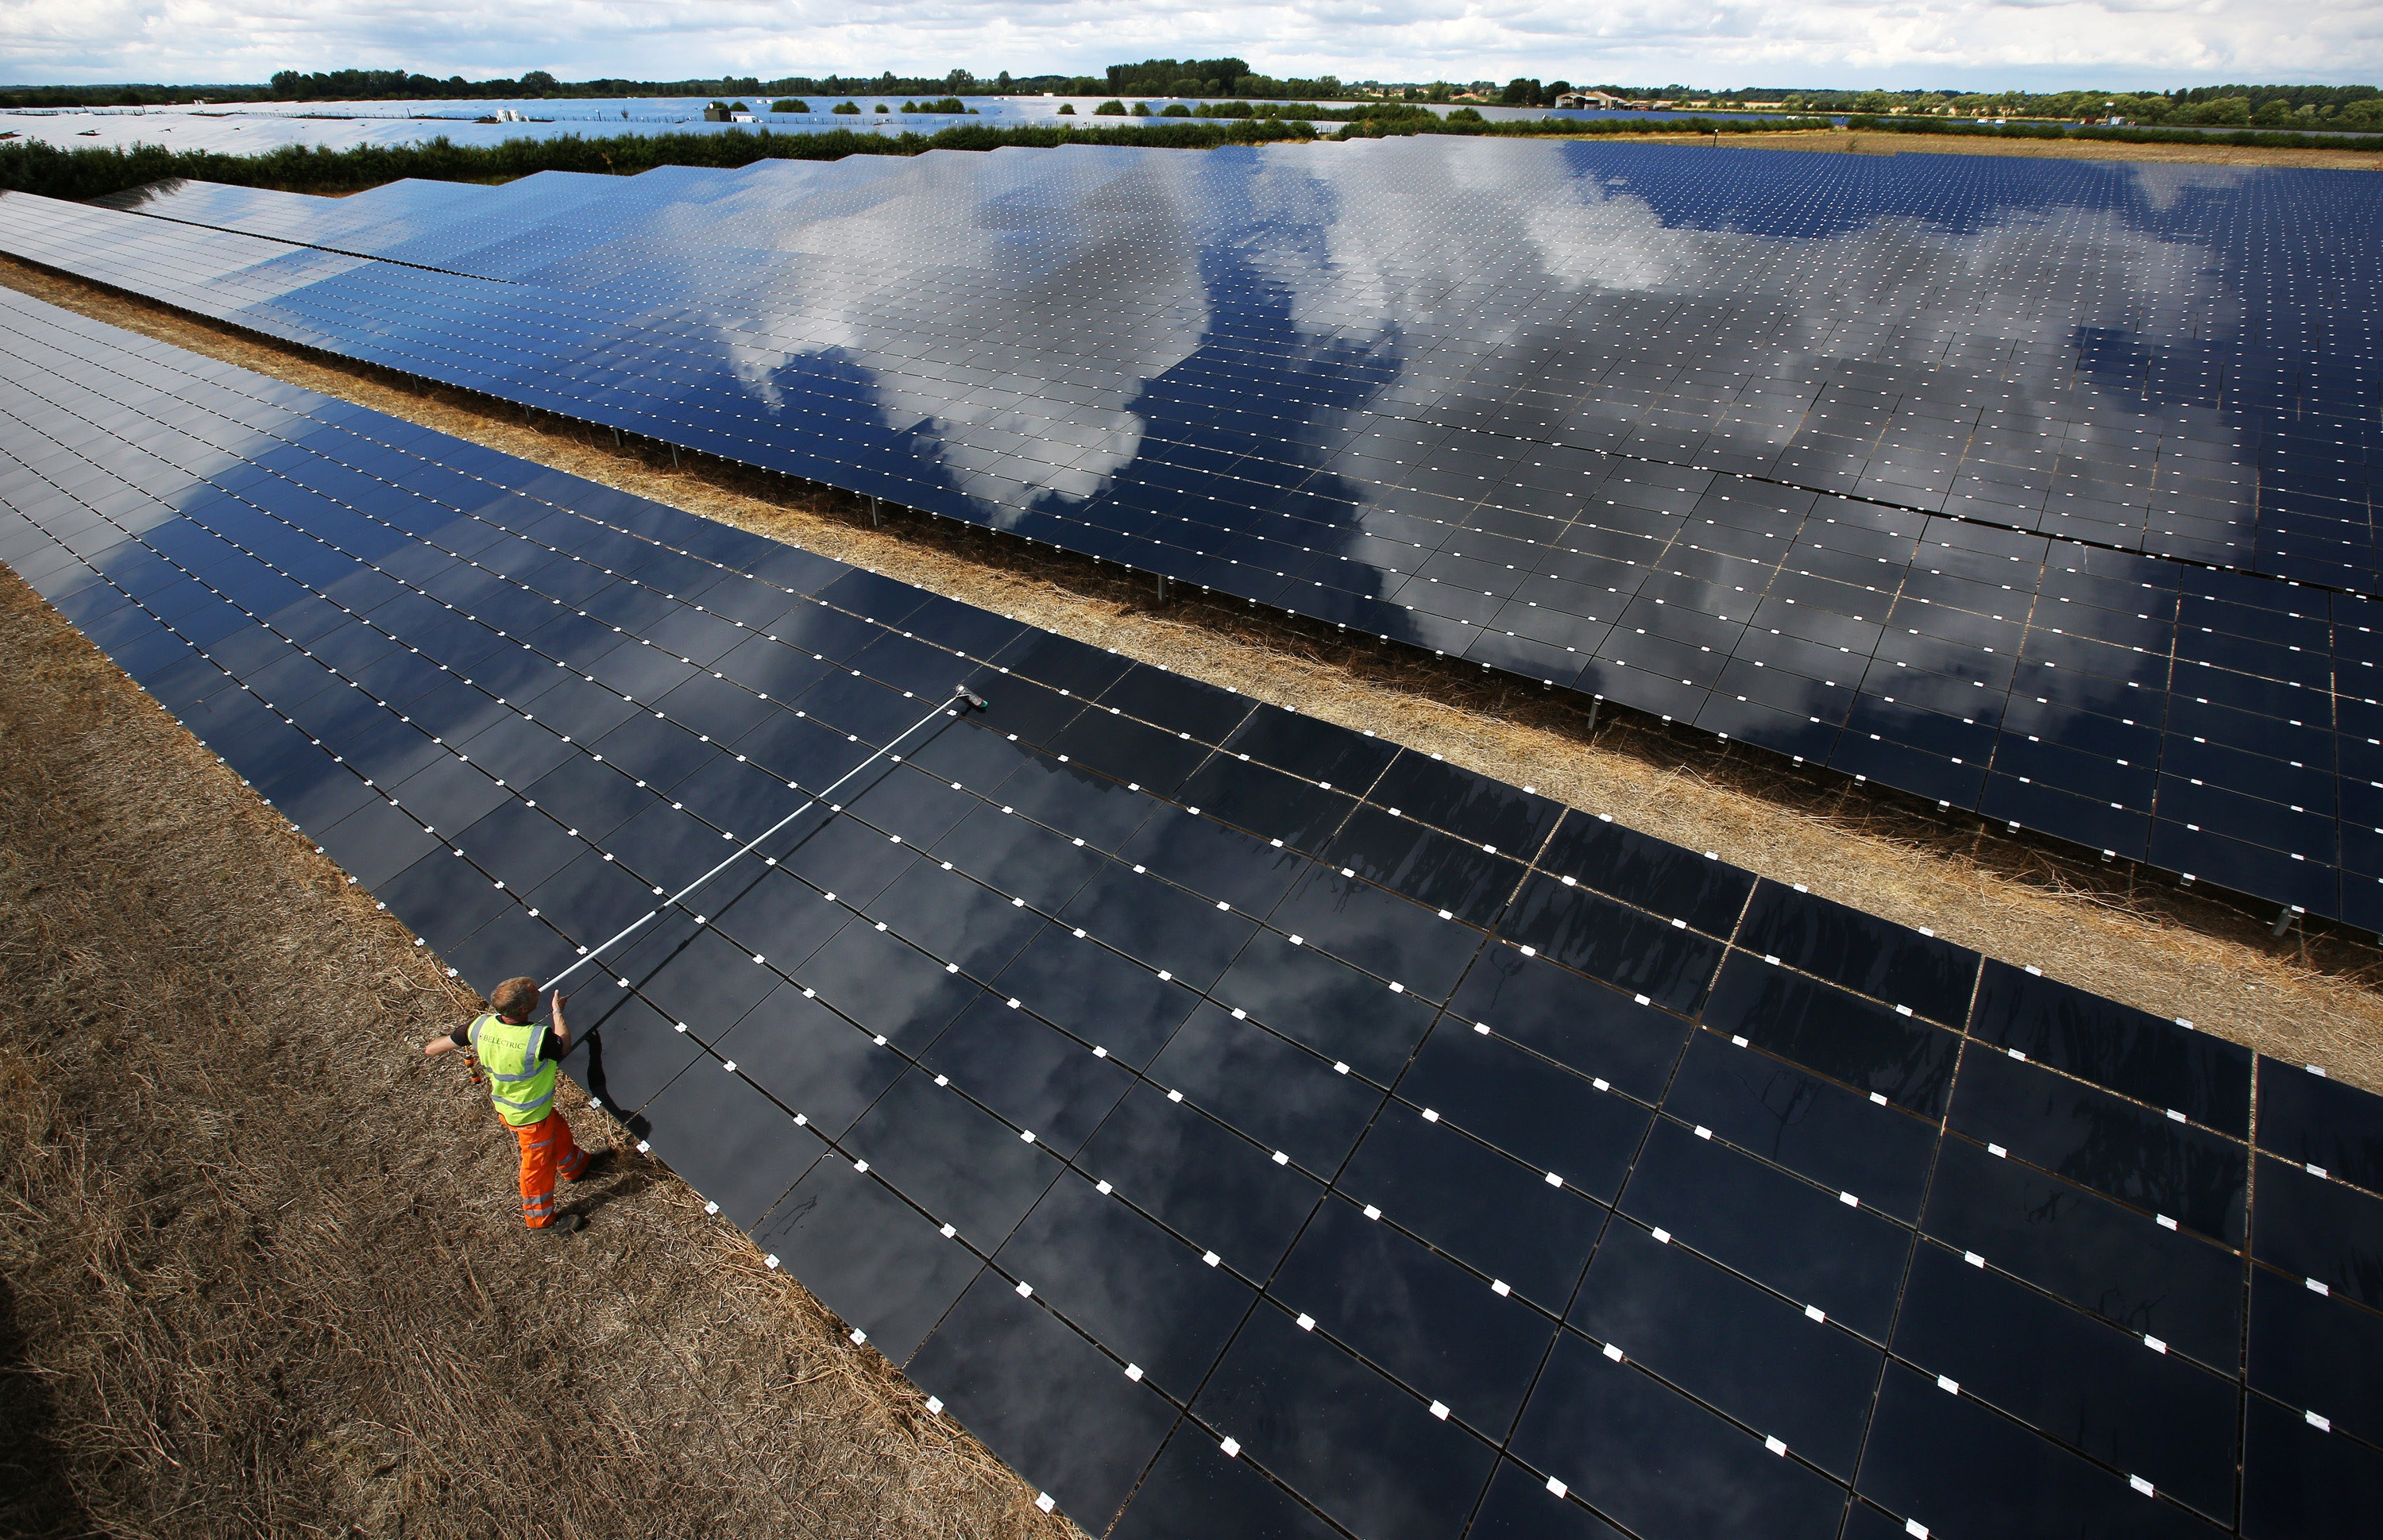 Solar farm companies are increasingly looking to large swathes of land in places such as Western New York for the acreage they need for their installations of panels. (Peter Macdiarmid/Getty Images)